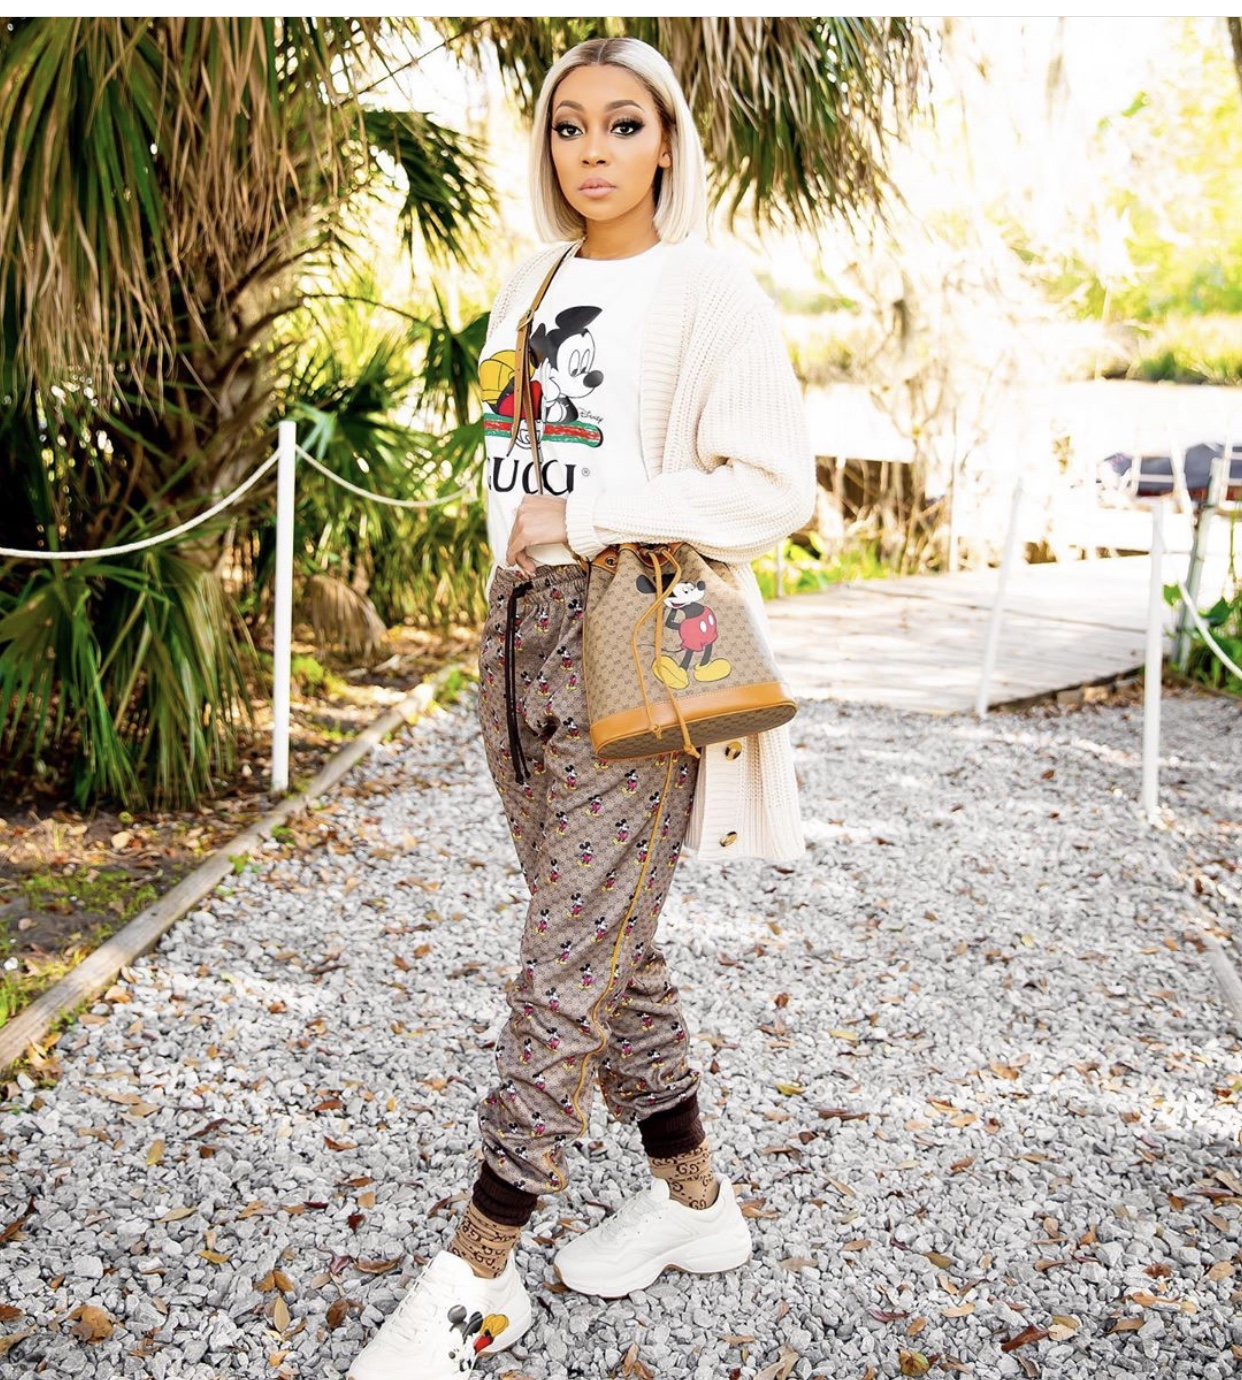 monica-in-disney-x-gucci-outfit-out-in-new-orleans